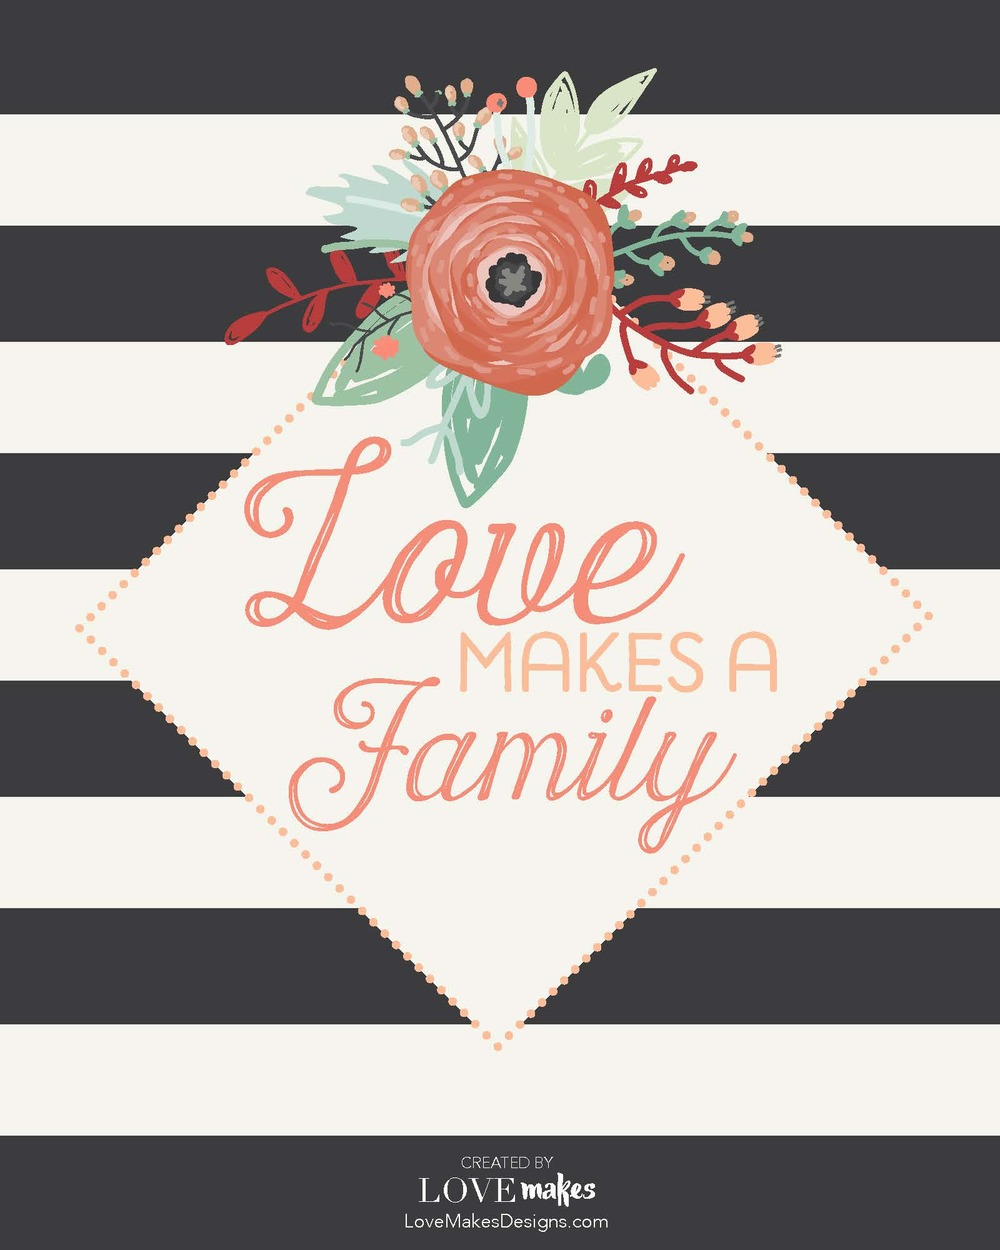 LoveMakesAFamily Printable w logo.jpg